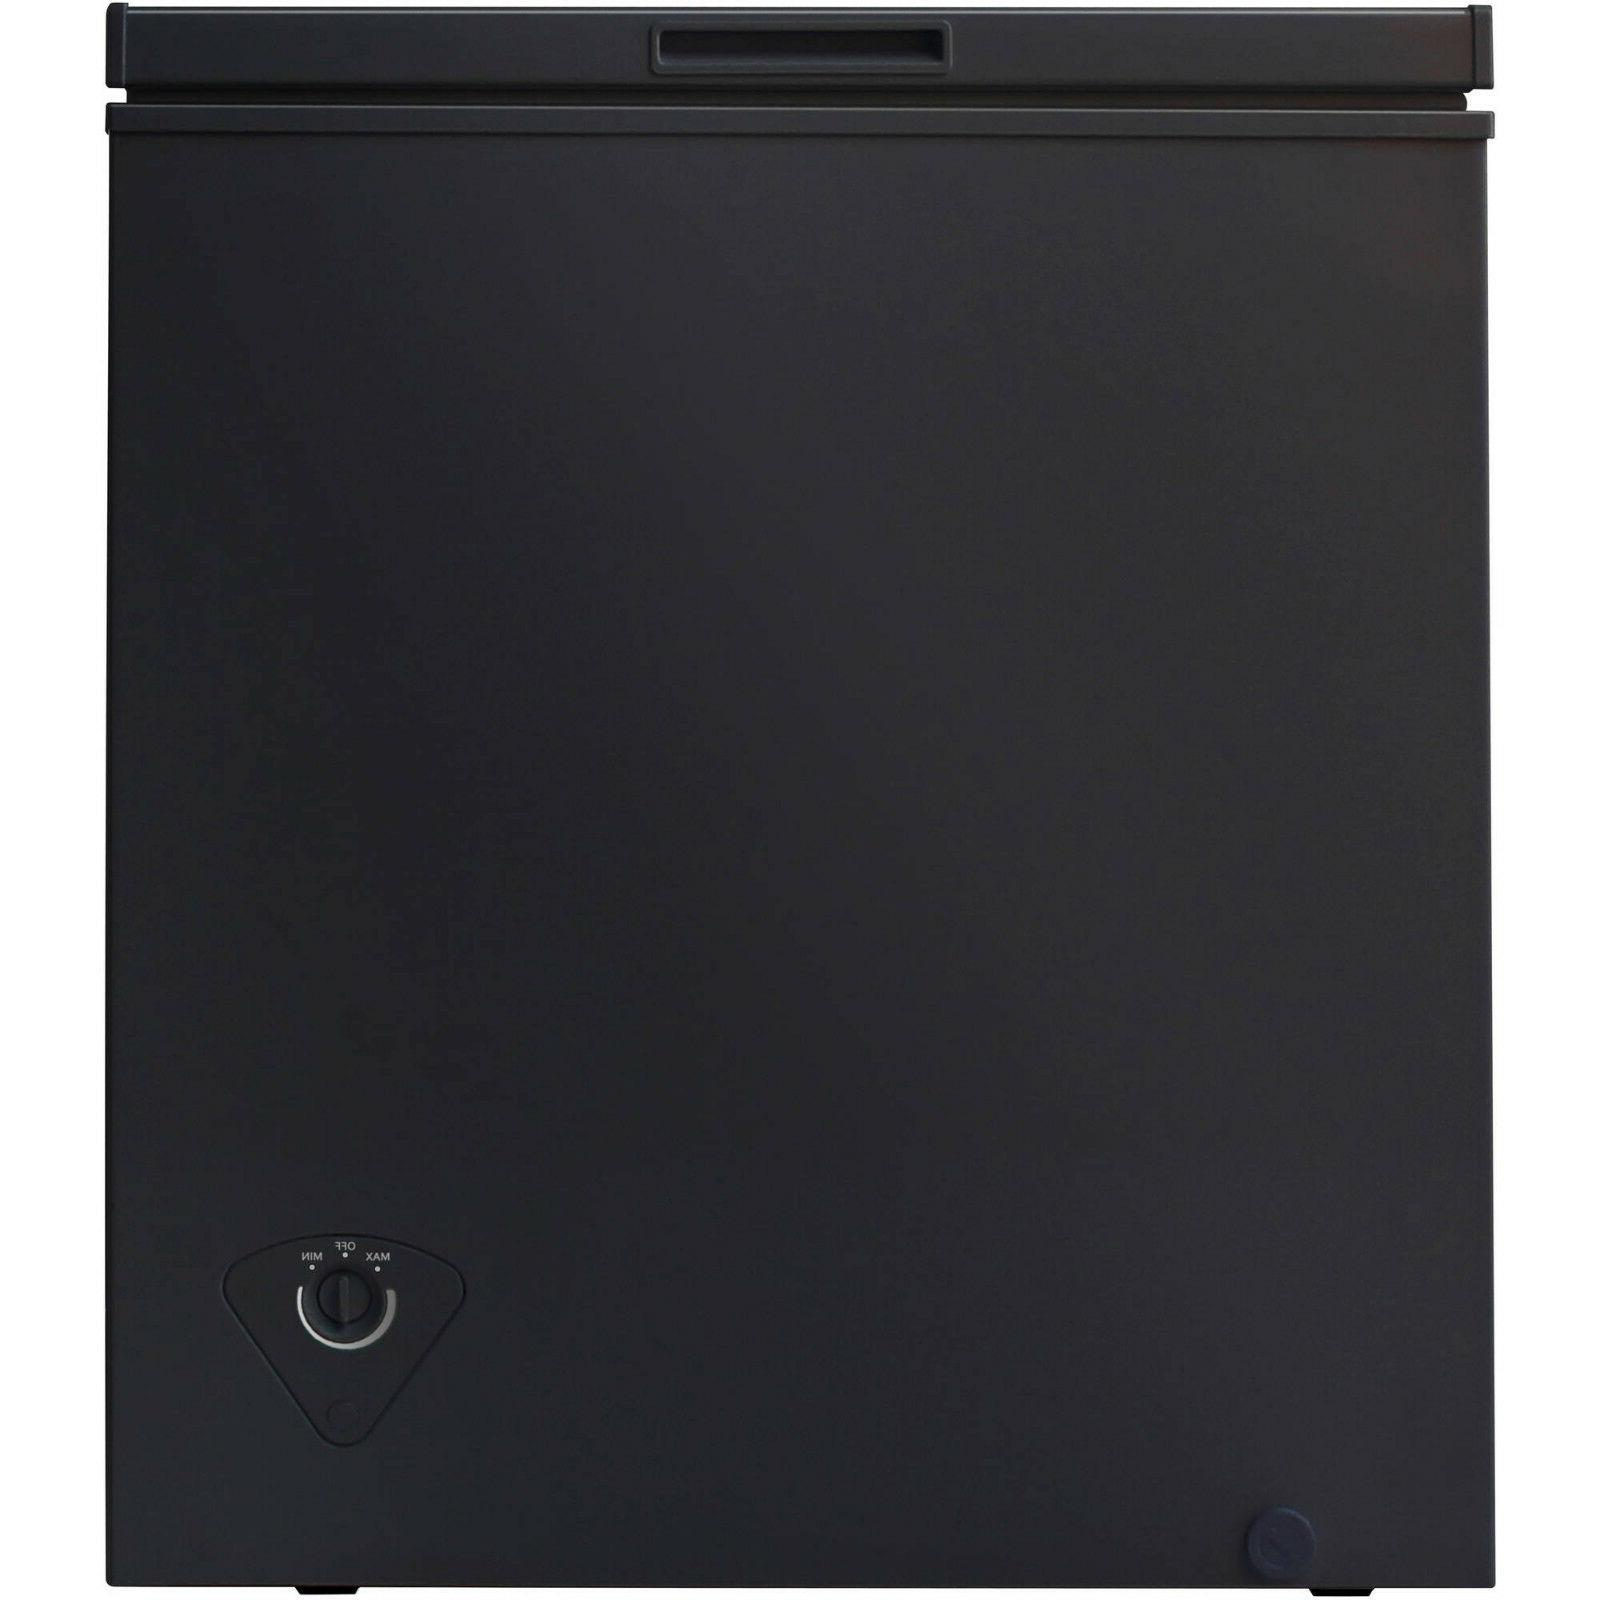 5.0 cu ft Deep Upright Dorm NEW